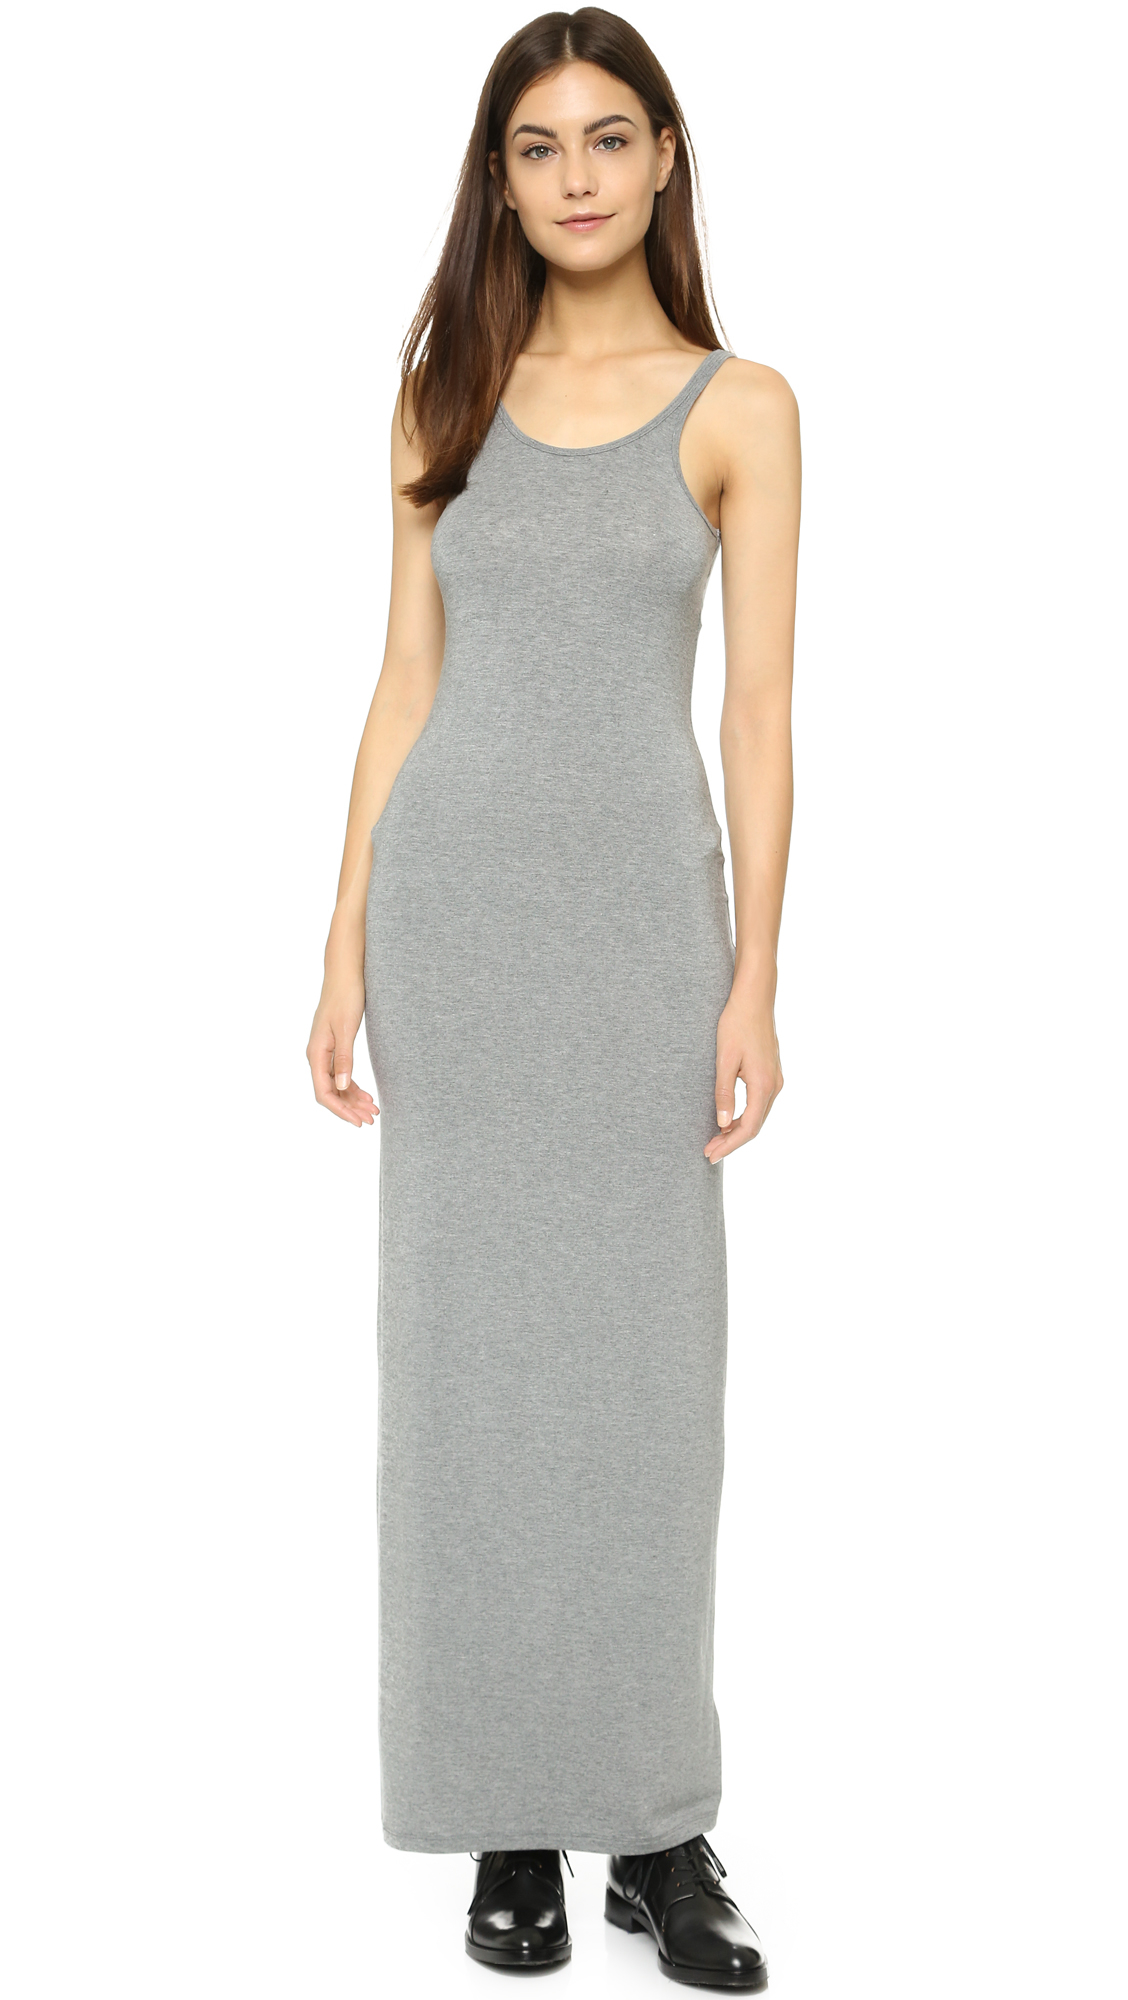 6b217b28459 Gray Tank Maxi Dress – Fashion dresses